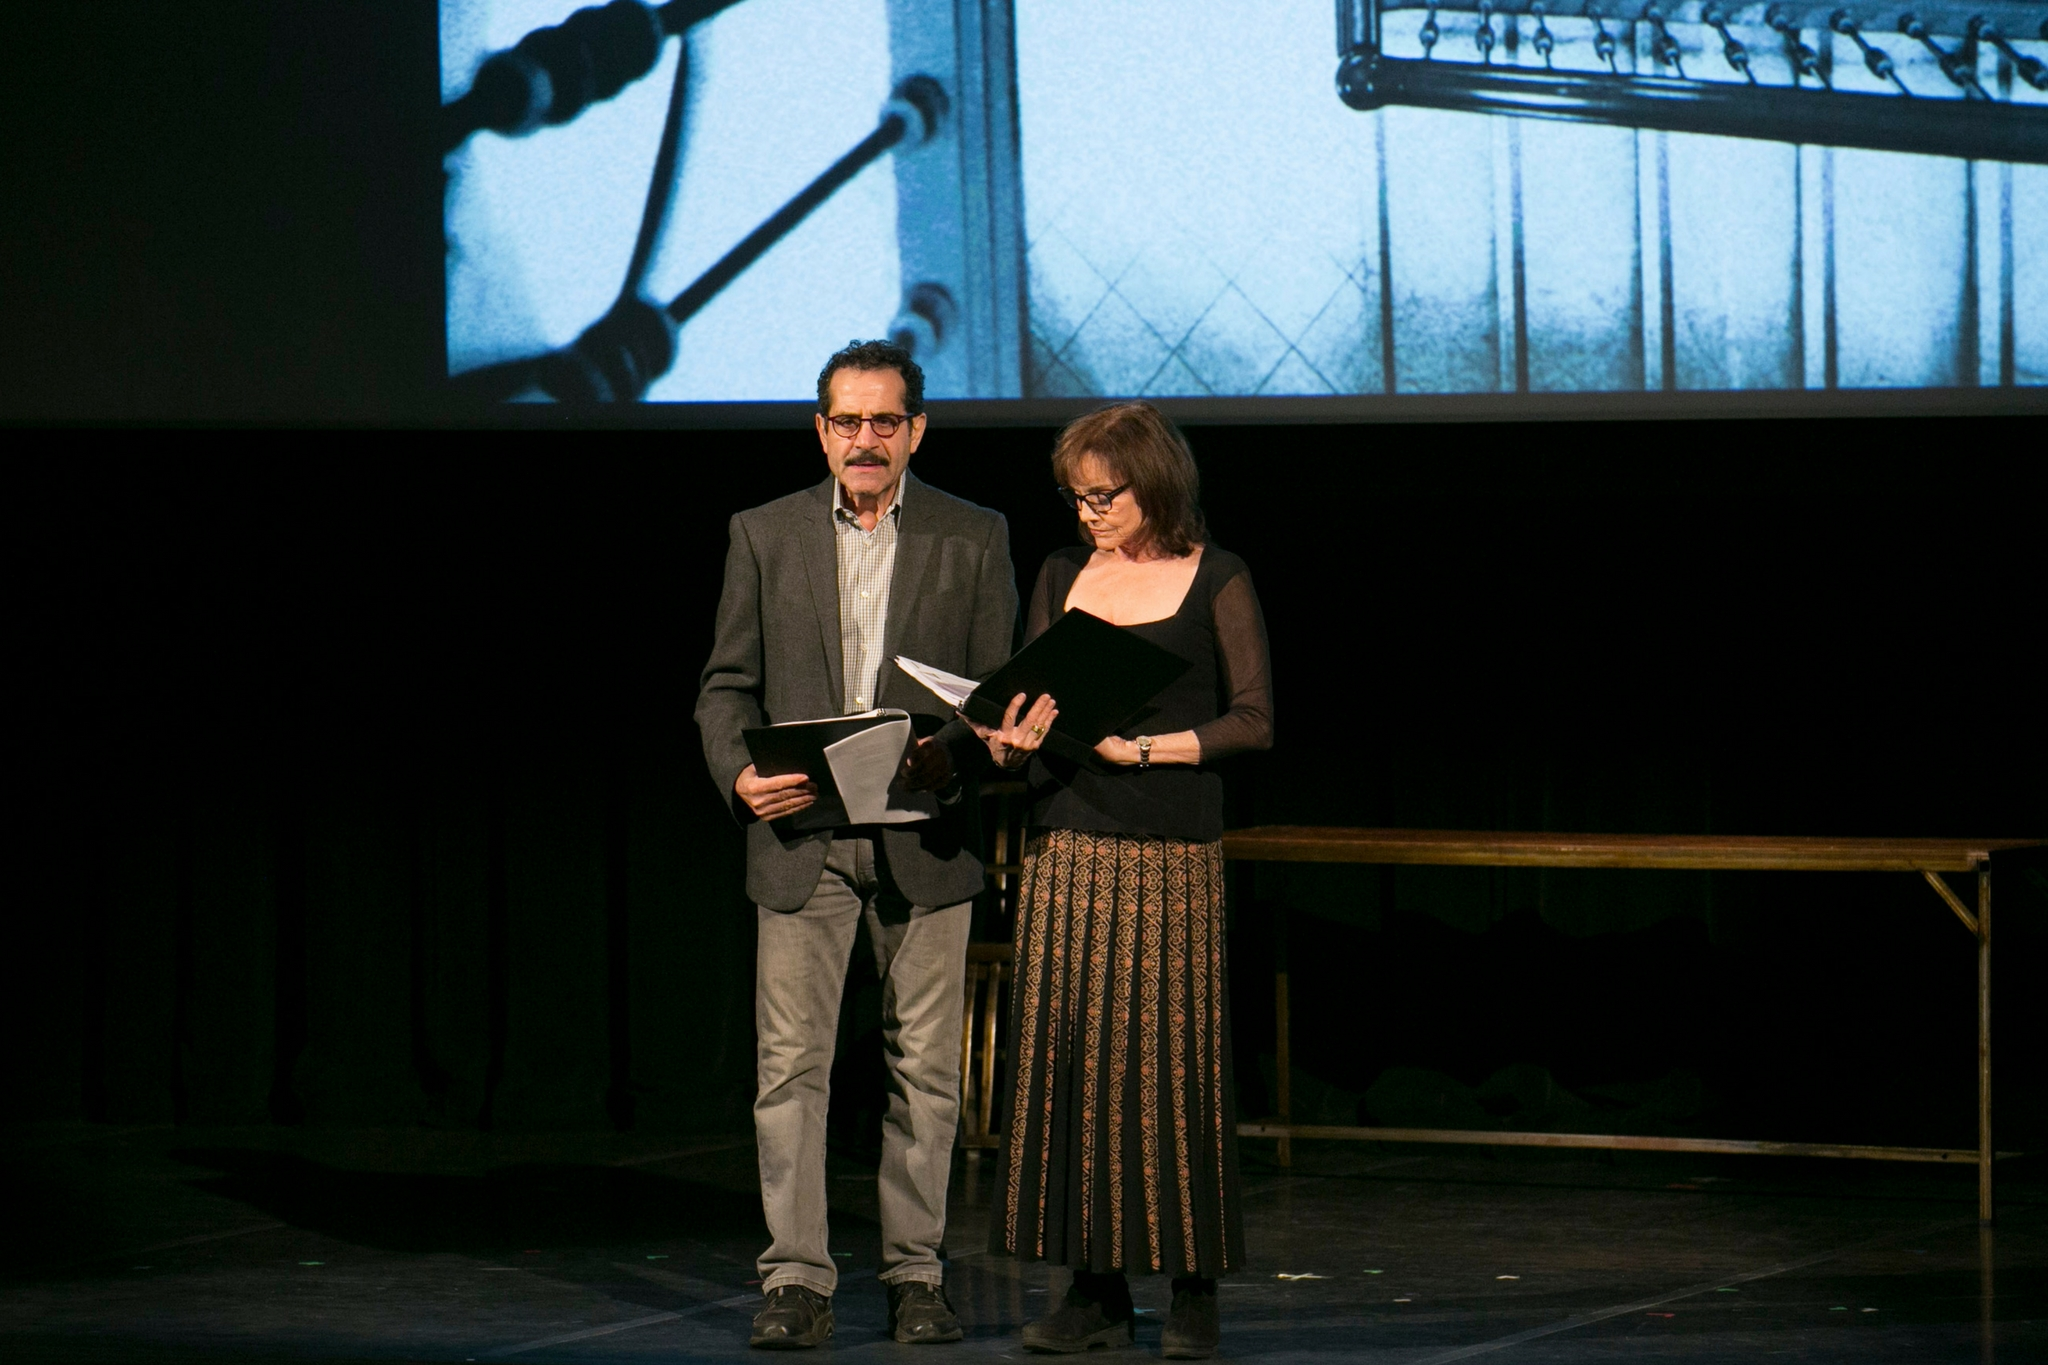 Tony Shalhoub (Man) and Brooke Adams (Woman)in The Betrayal, Theatre in the Rough, 2017-Photo by Evgenia Eliseeva